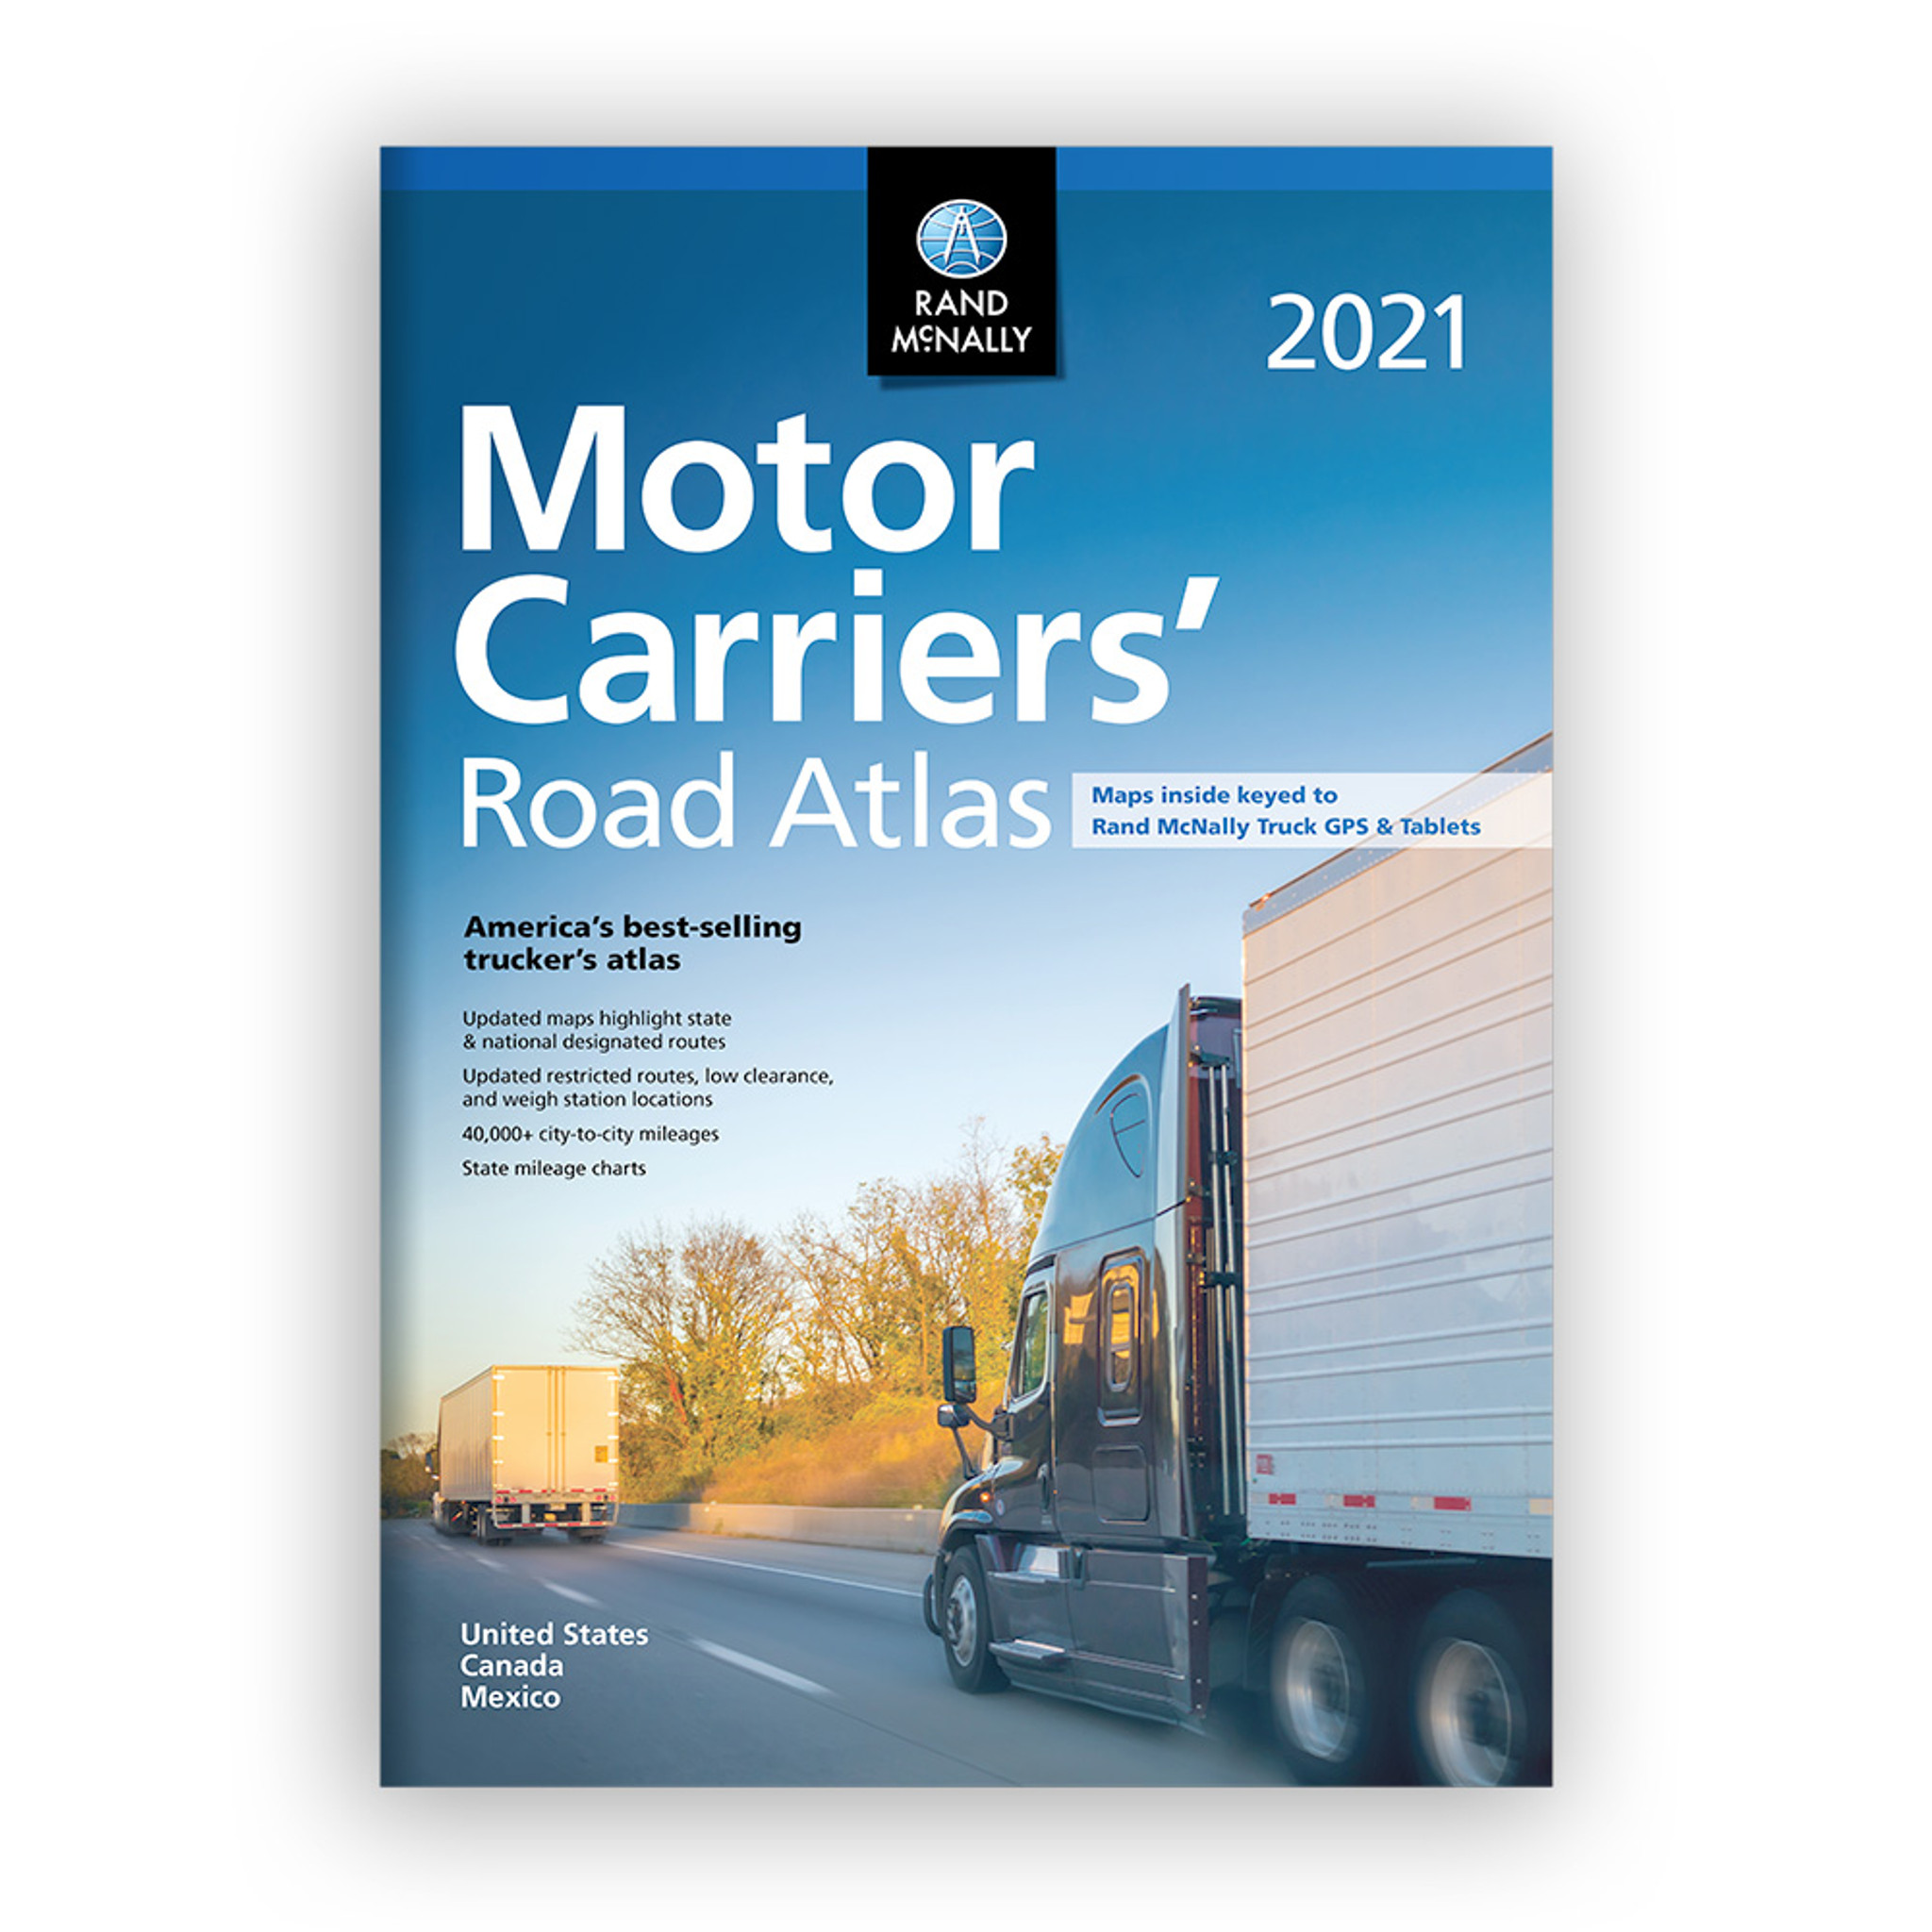 Best Phone Carrier 2021 Rand McNally 2021 Motor Carriers' Road Atlas